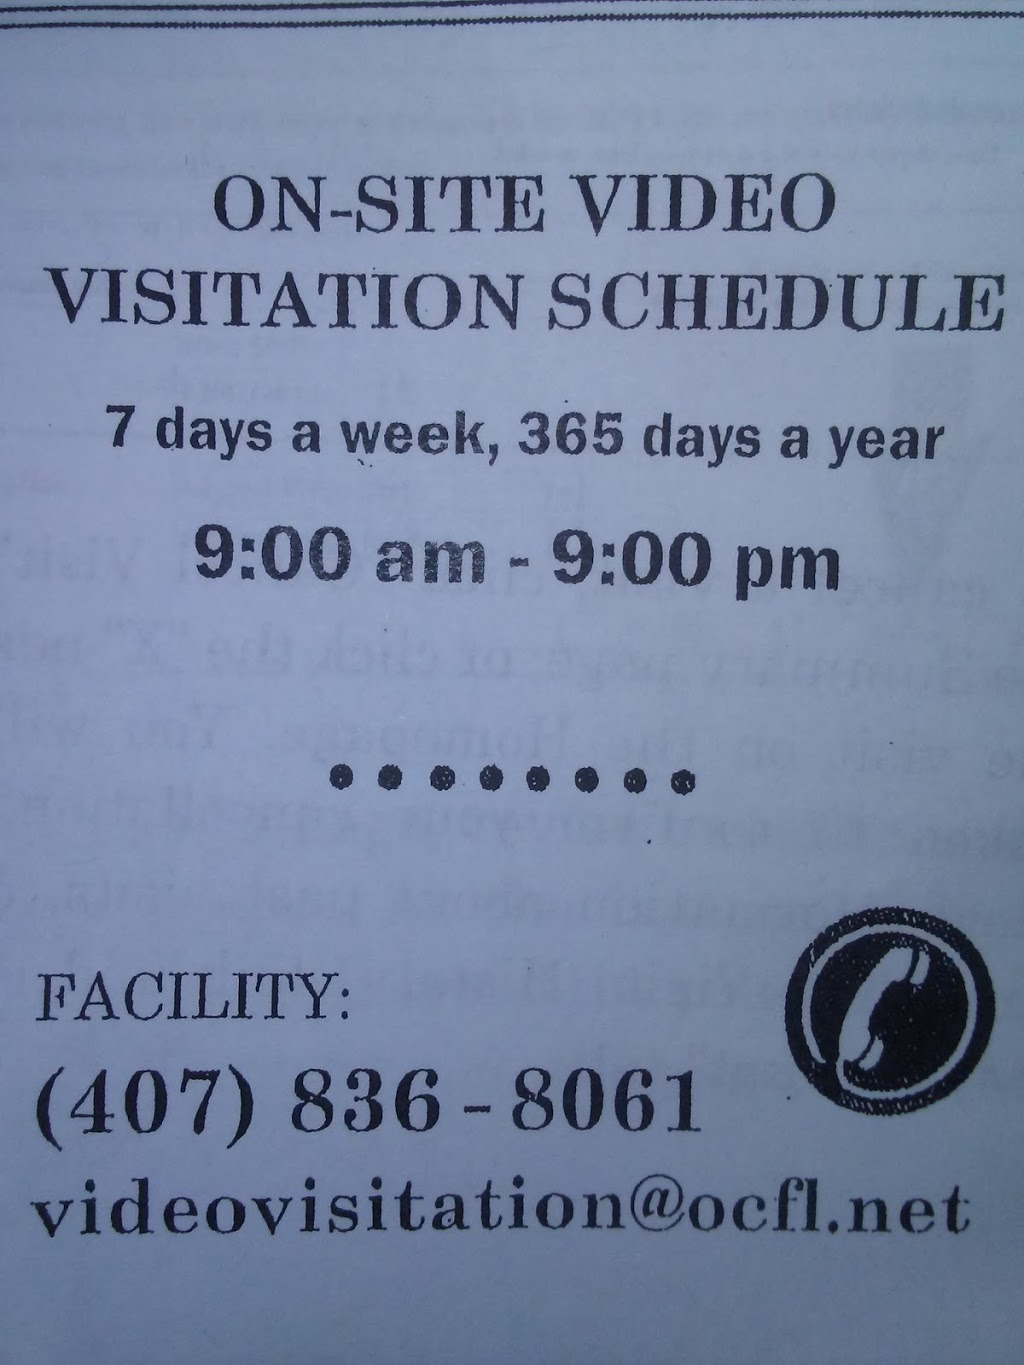 Womans Detention Center - Visitation Center - point of interest    Photo 2 of 2   Address: 3855 S John Young Pkwy, Orlando, FL 32839, USA   Phone: (407) 836-3400